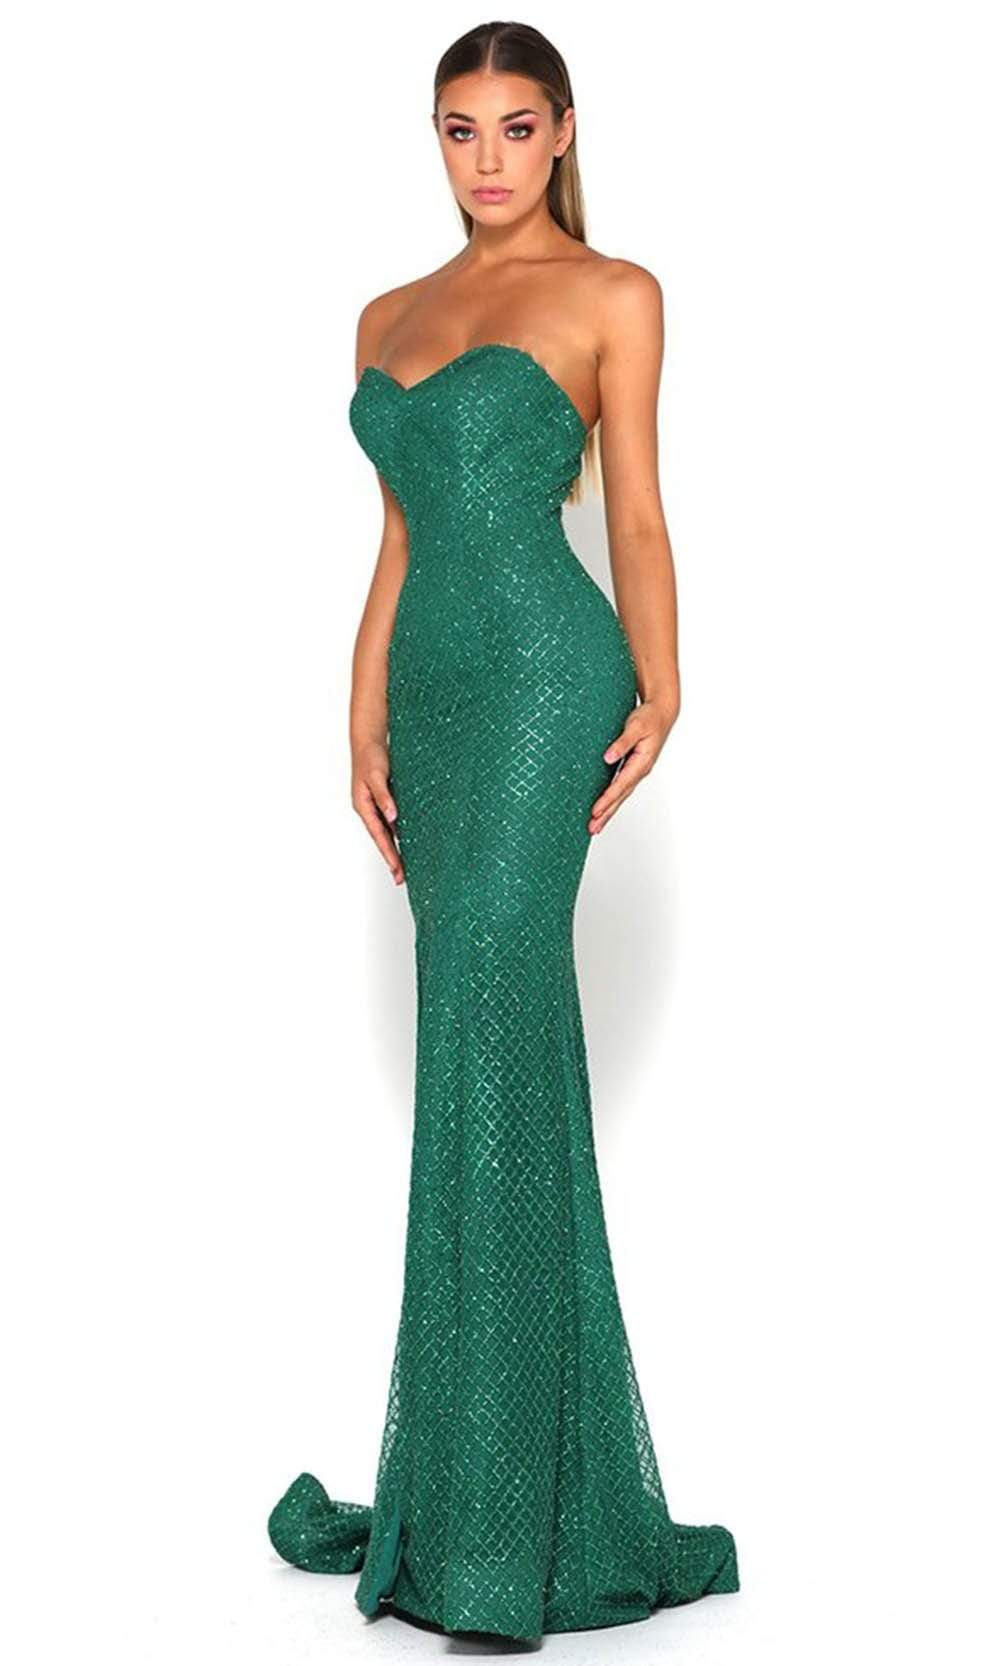 Portia and Scarlett - Tyra Gown High Slit Fitted Glitter Net Gown from Portia and Scarlett